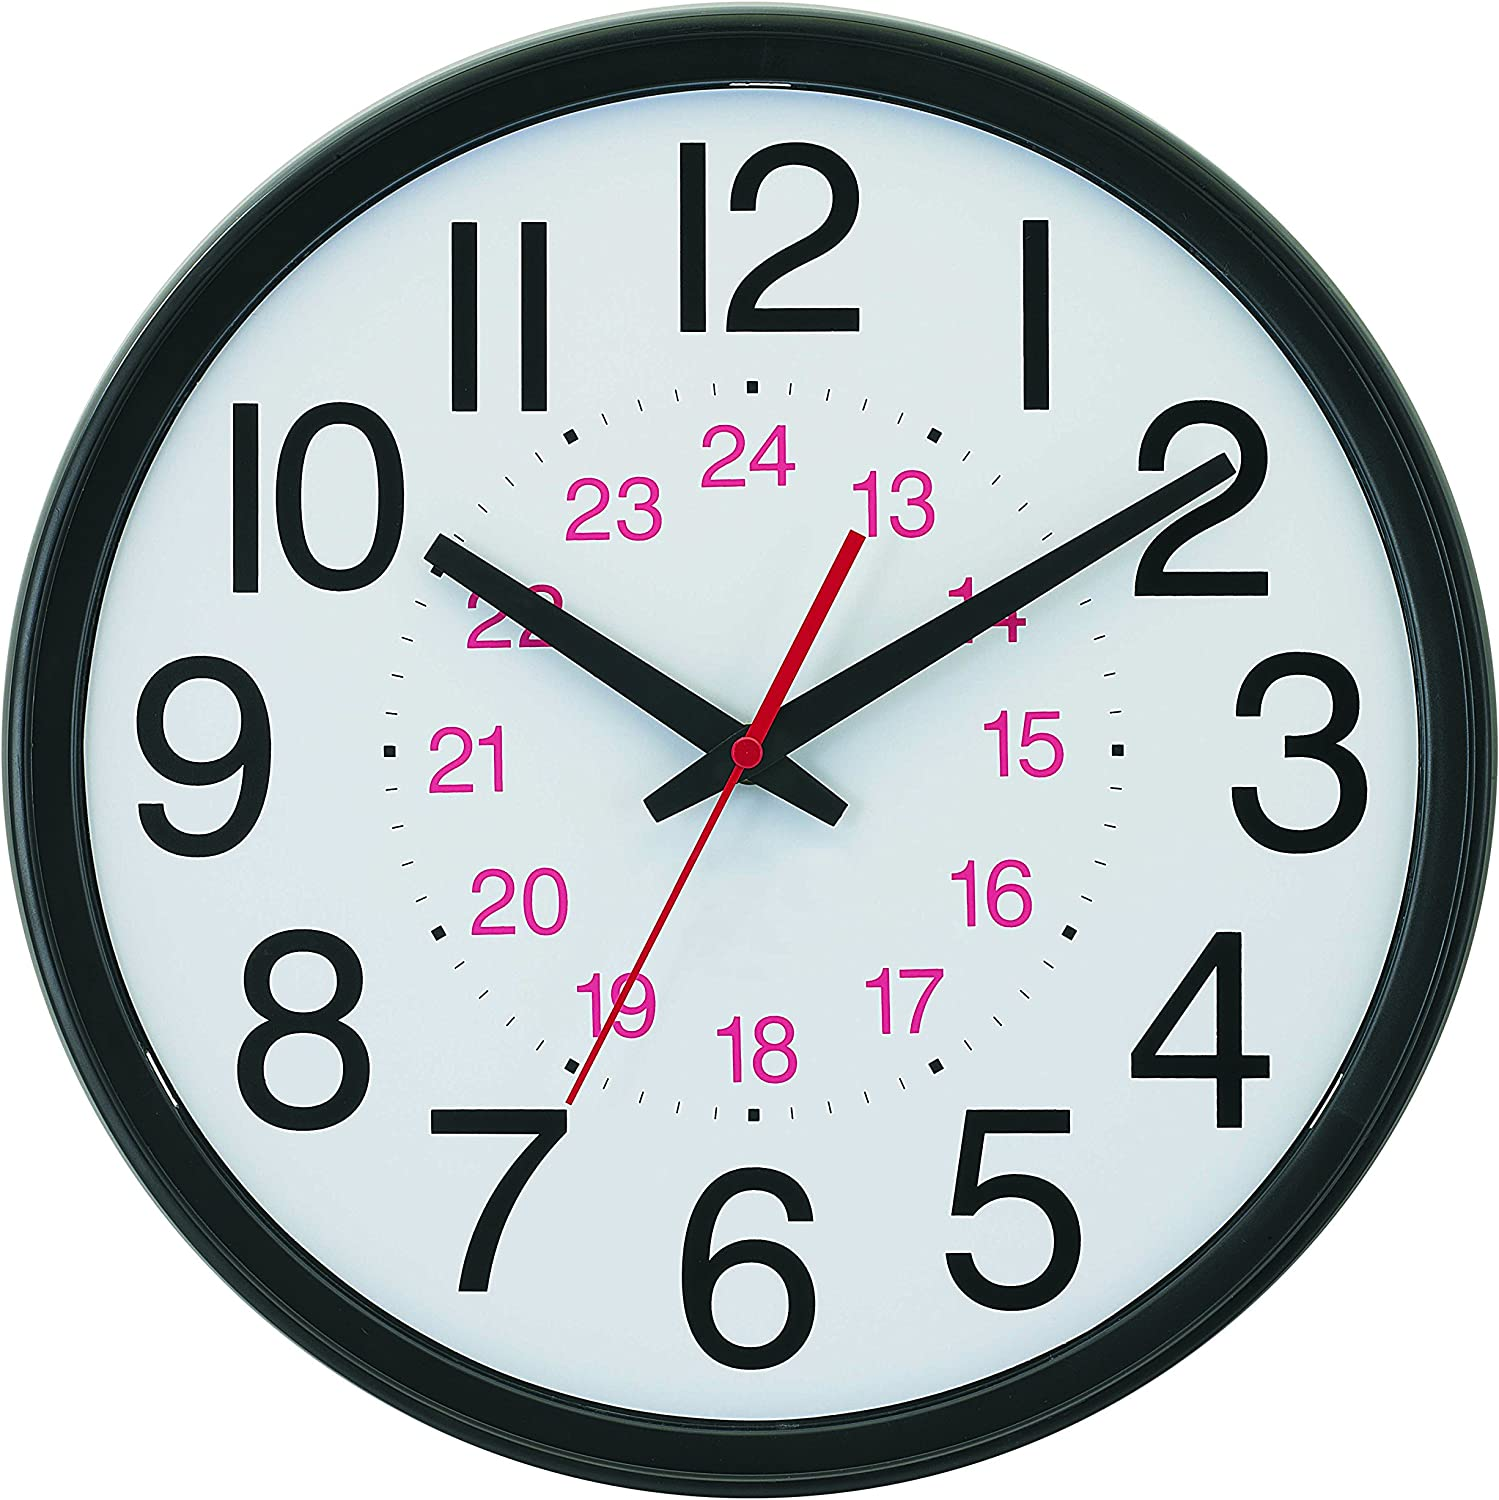 """Tempus Wide Profile Wall Clock with 24 Hour Dial and Daylight Saving Time Auto-Adjust Movement, 13.75"""", Black"""